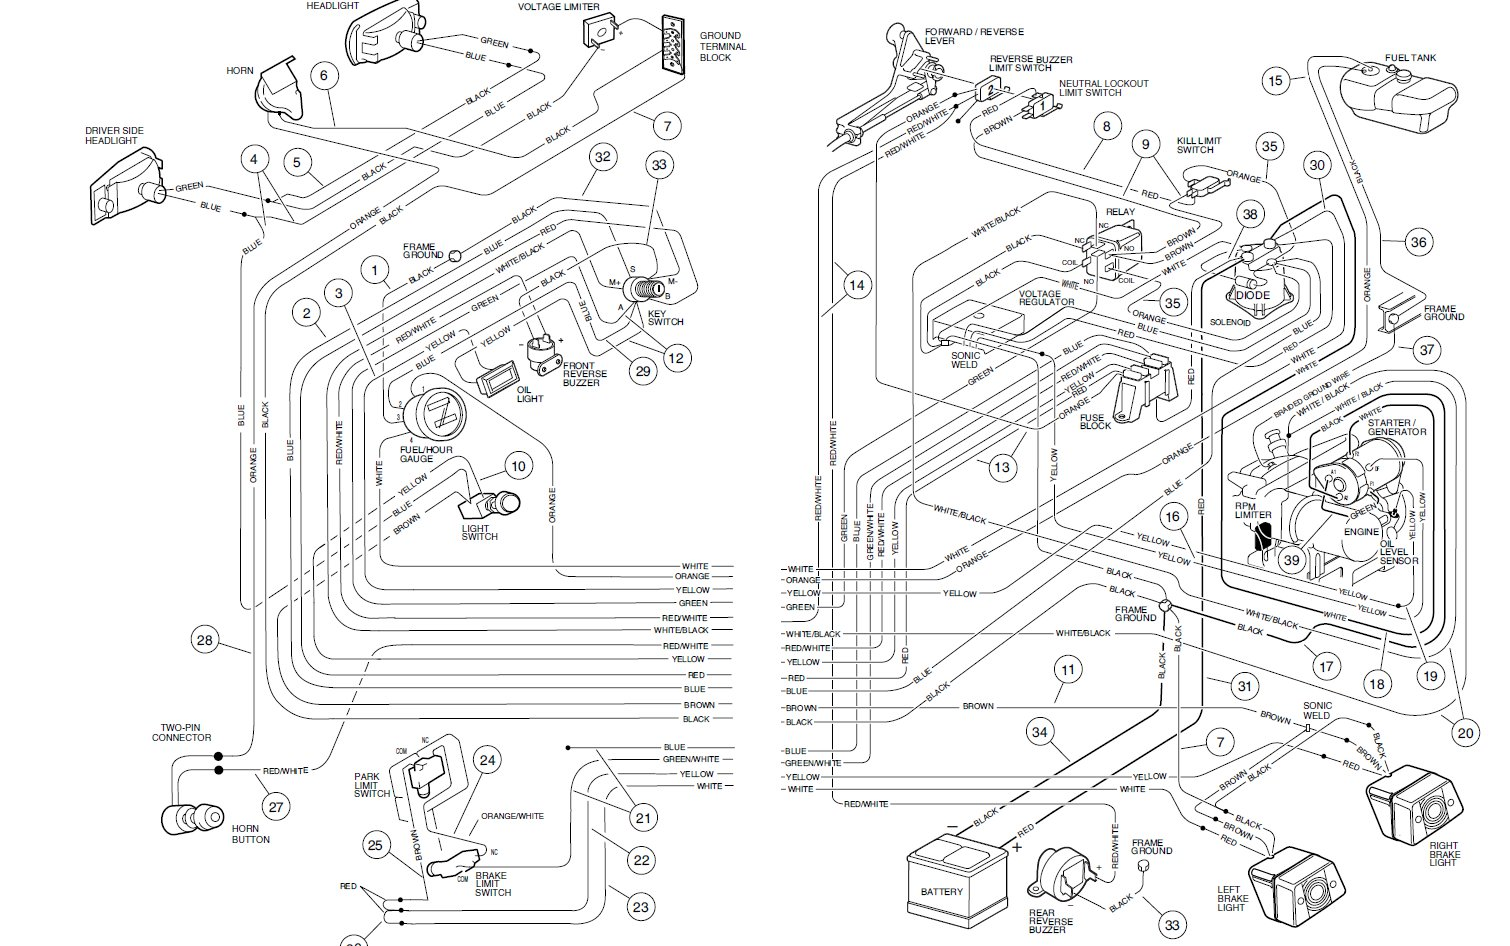 Vehicle Wiring Schematics